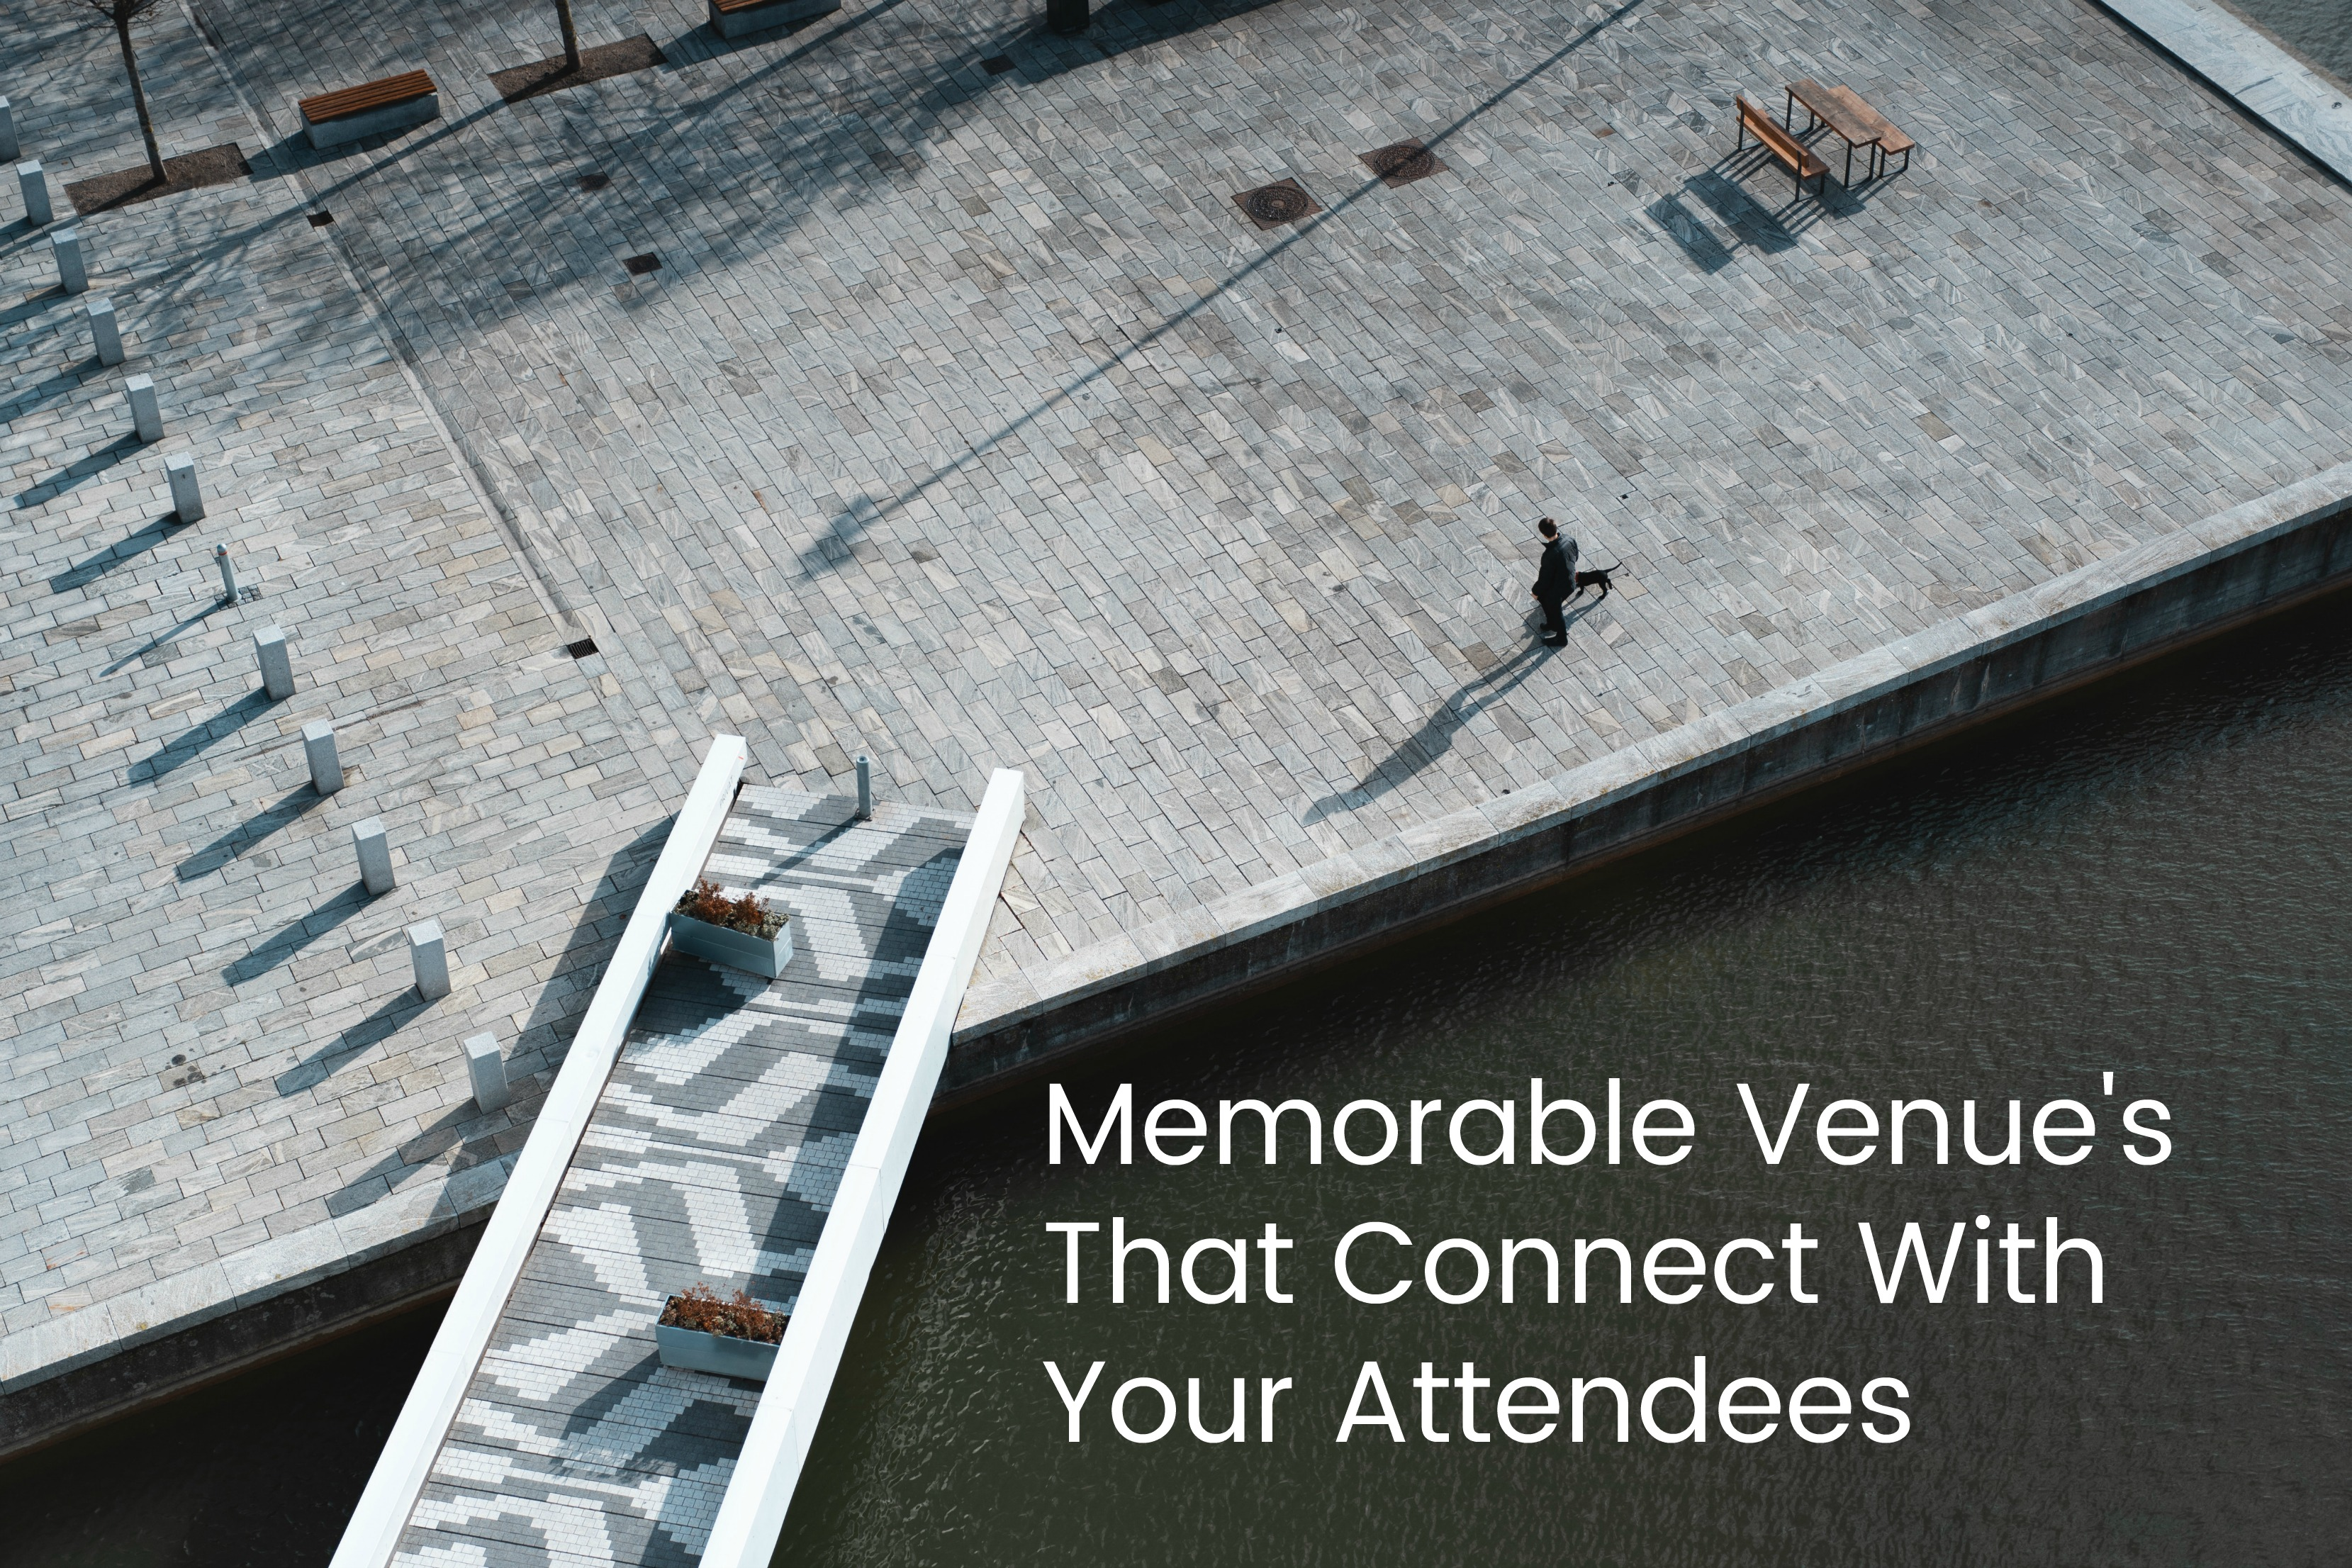 Memorable Venue's That Connect With Your Attendees